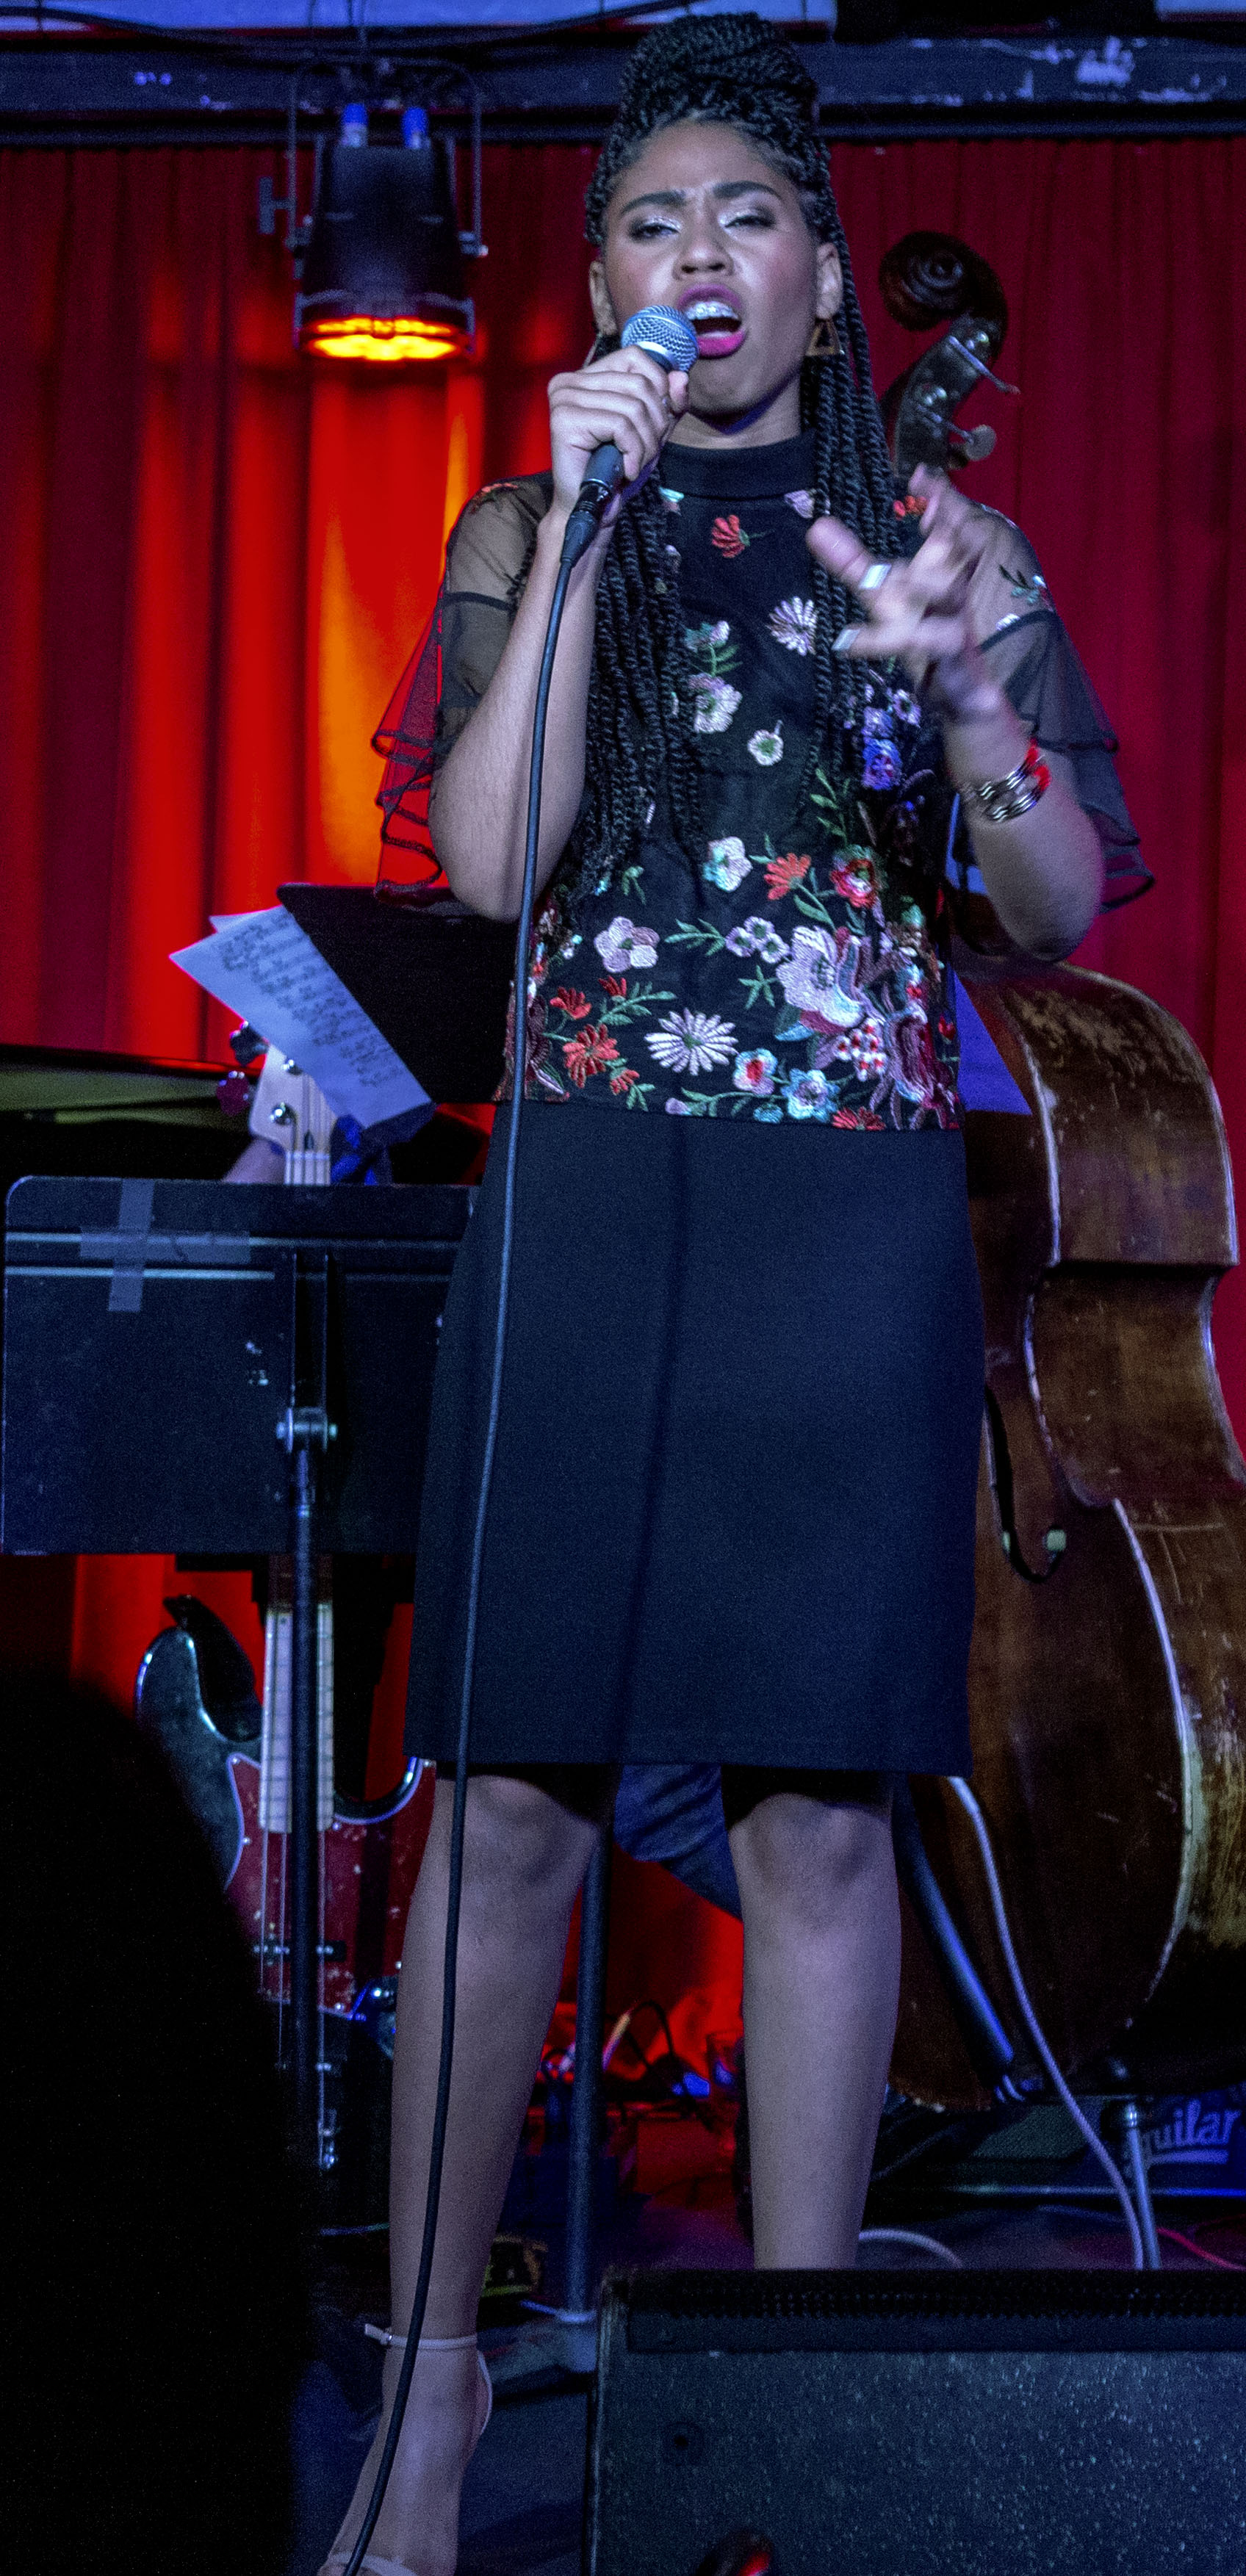 IMG_1210-StageSong.jpg